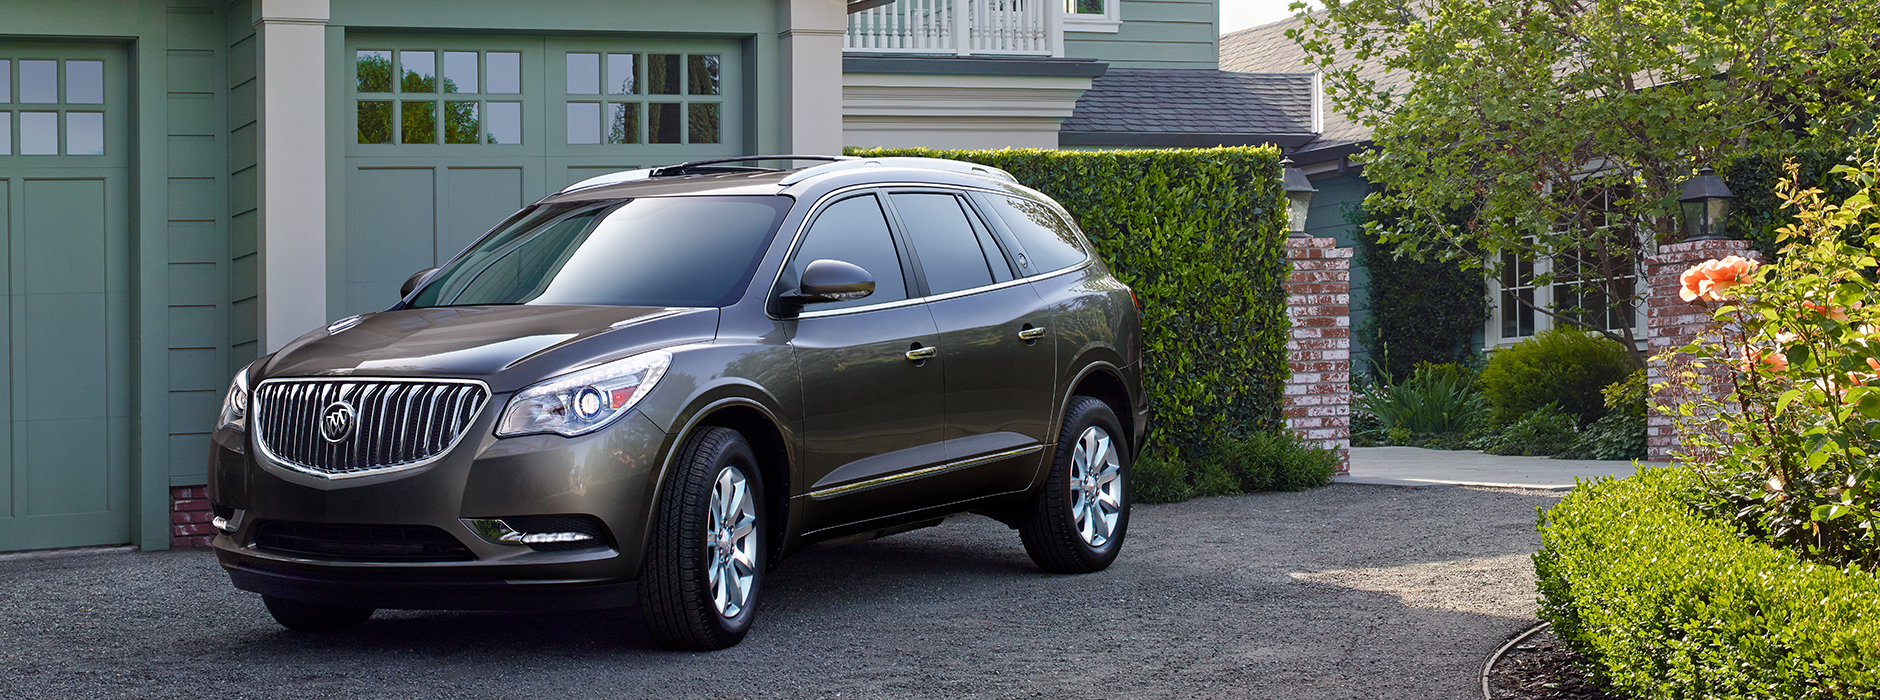 all front debuts new york buick unveils suv avenir at show enclave auto